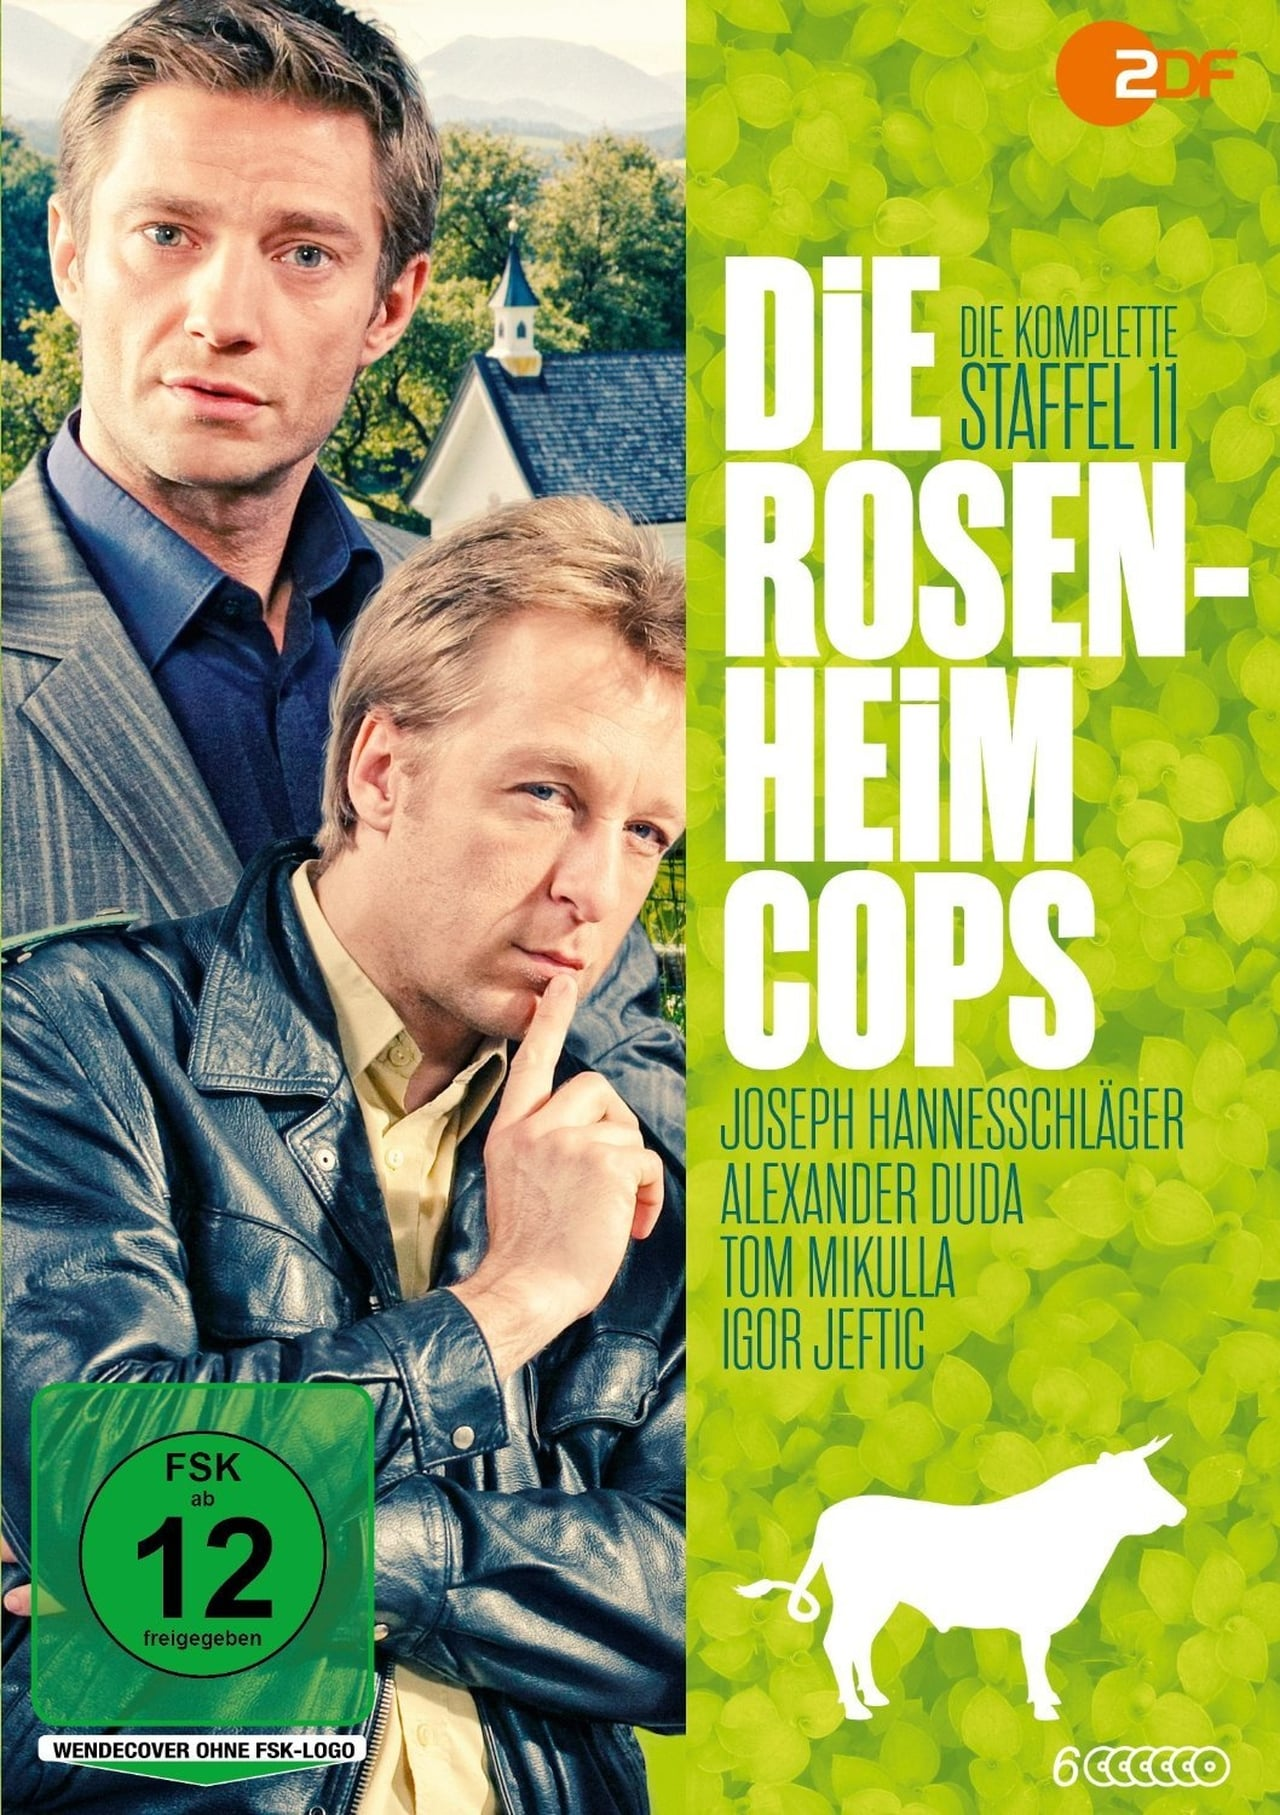 The Rosenheim Cops Season 11 (2011) putlockers cafe